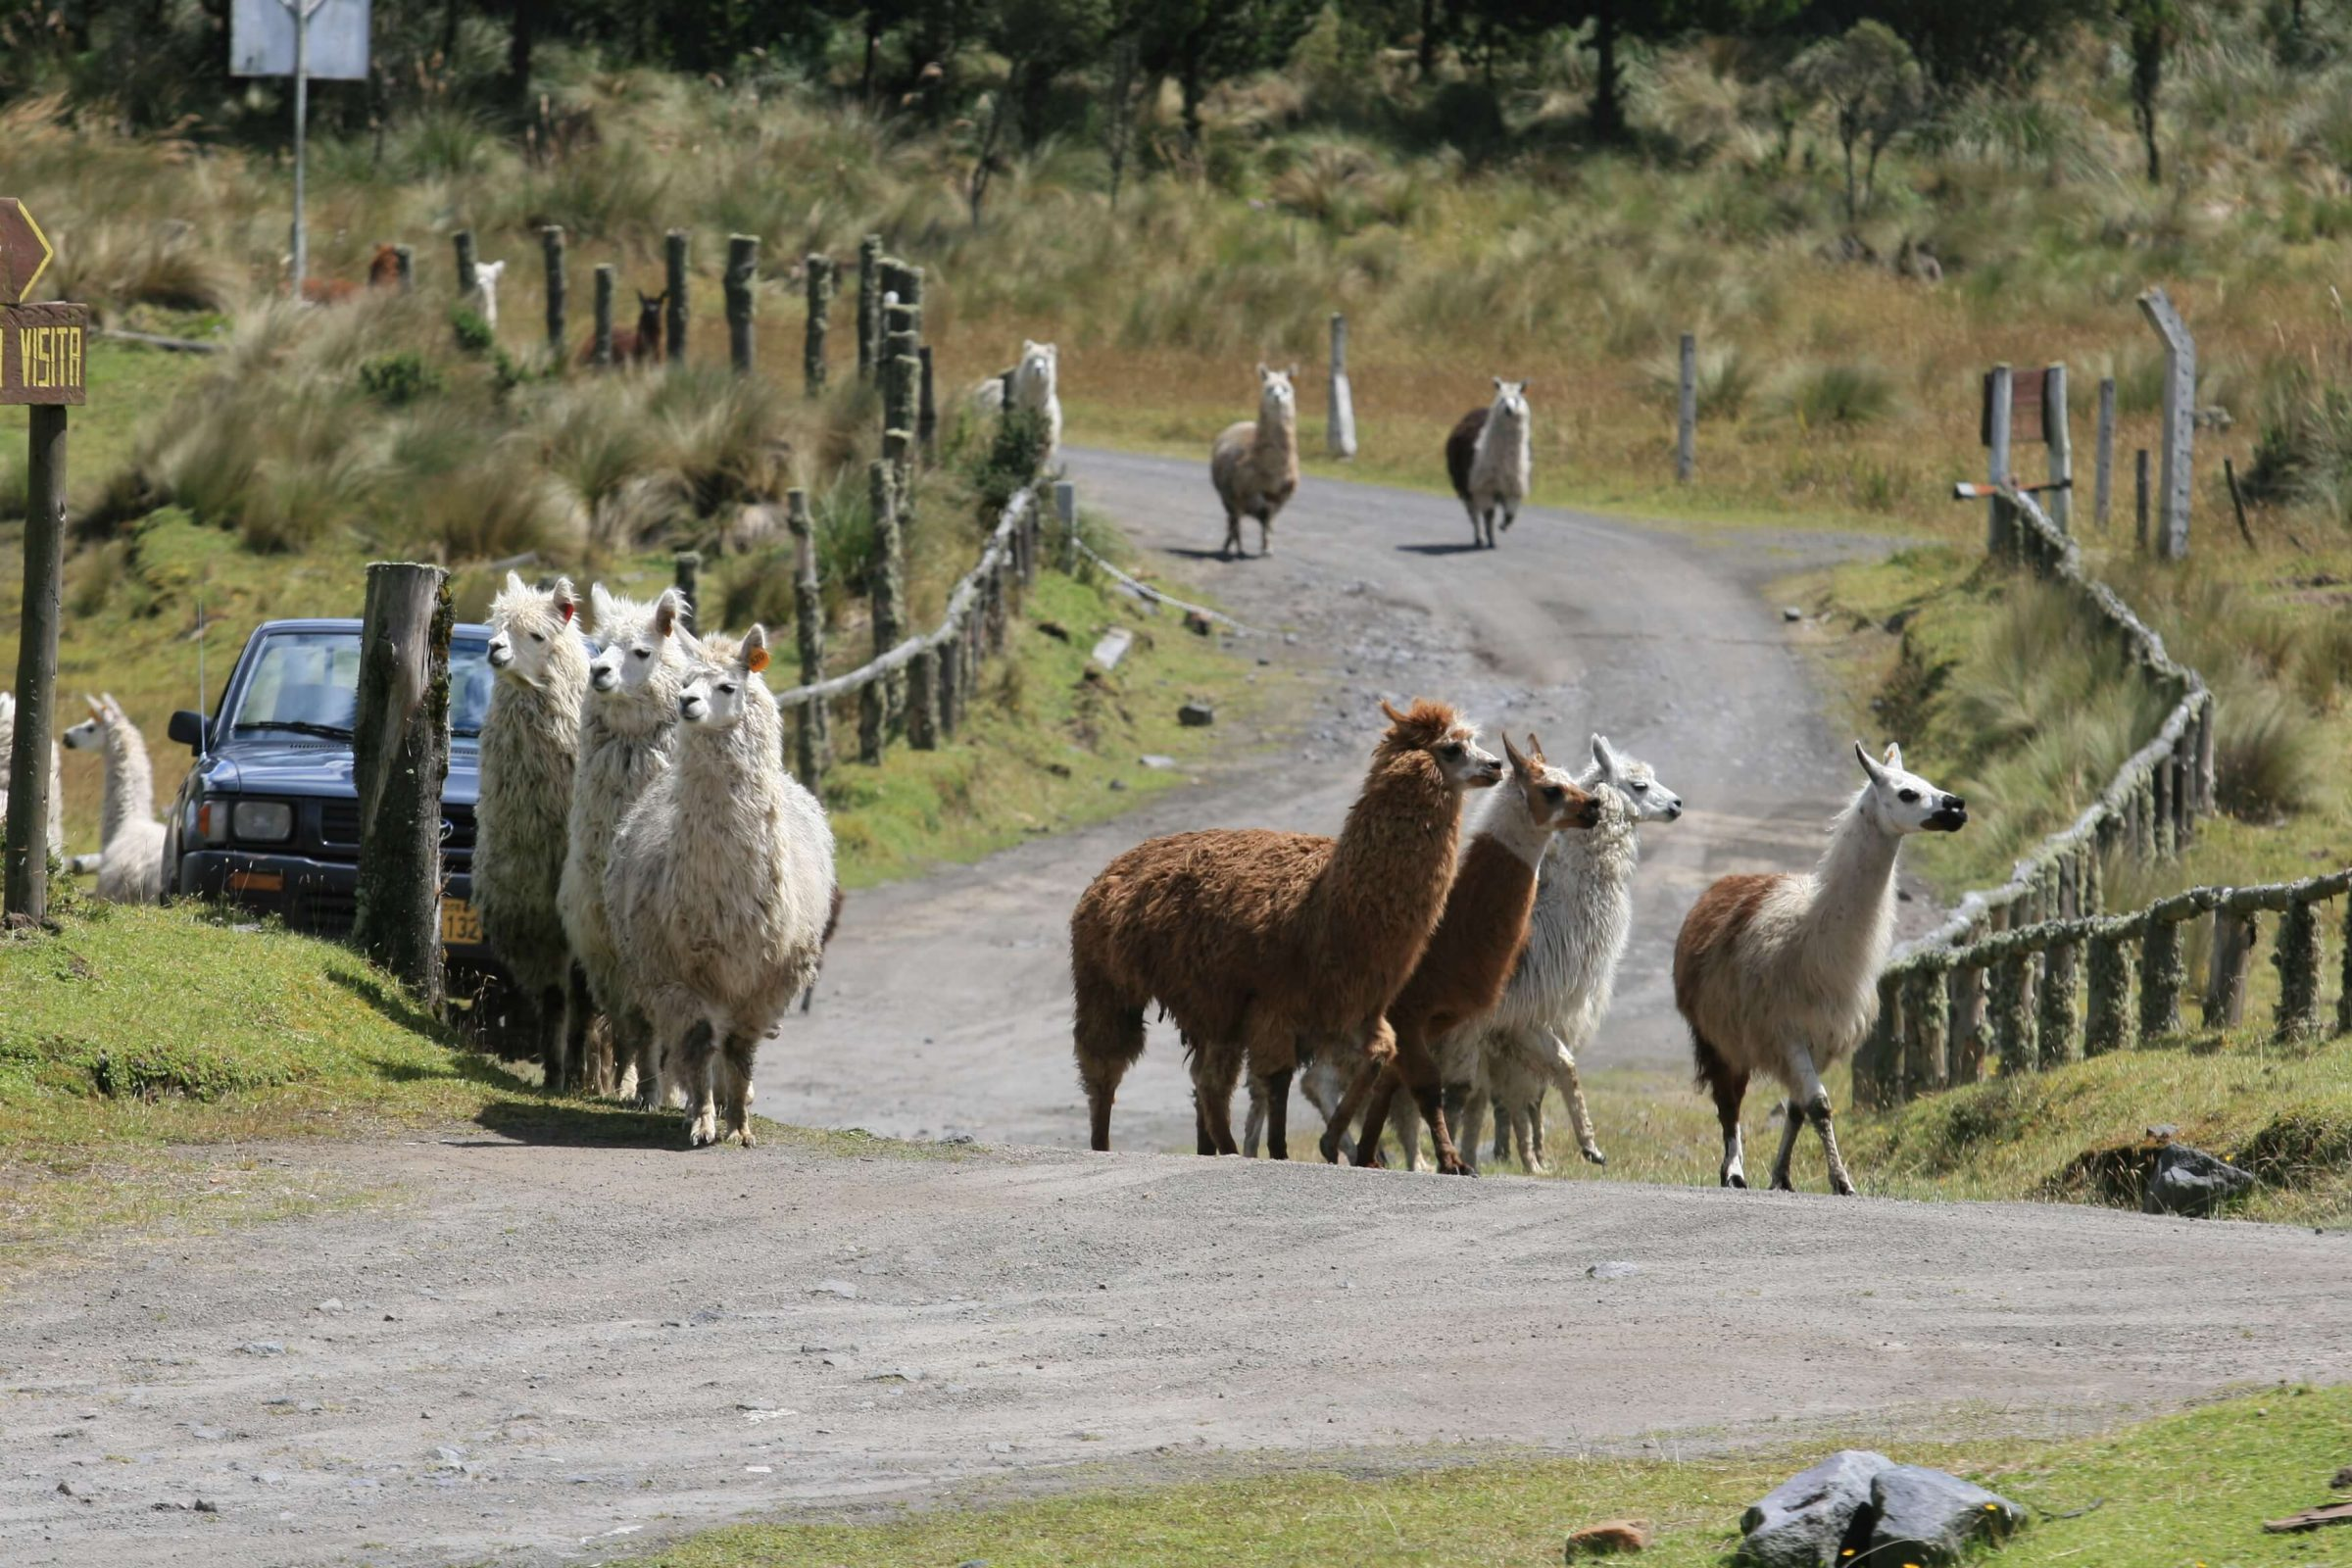 Cotopaxi National Park is a tour attraction suitable for everyone